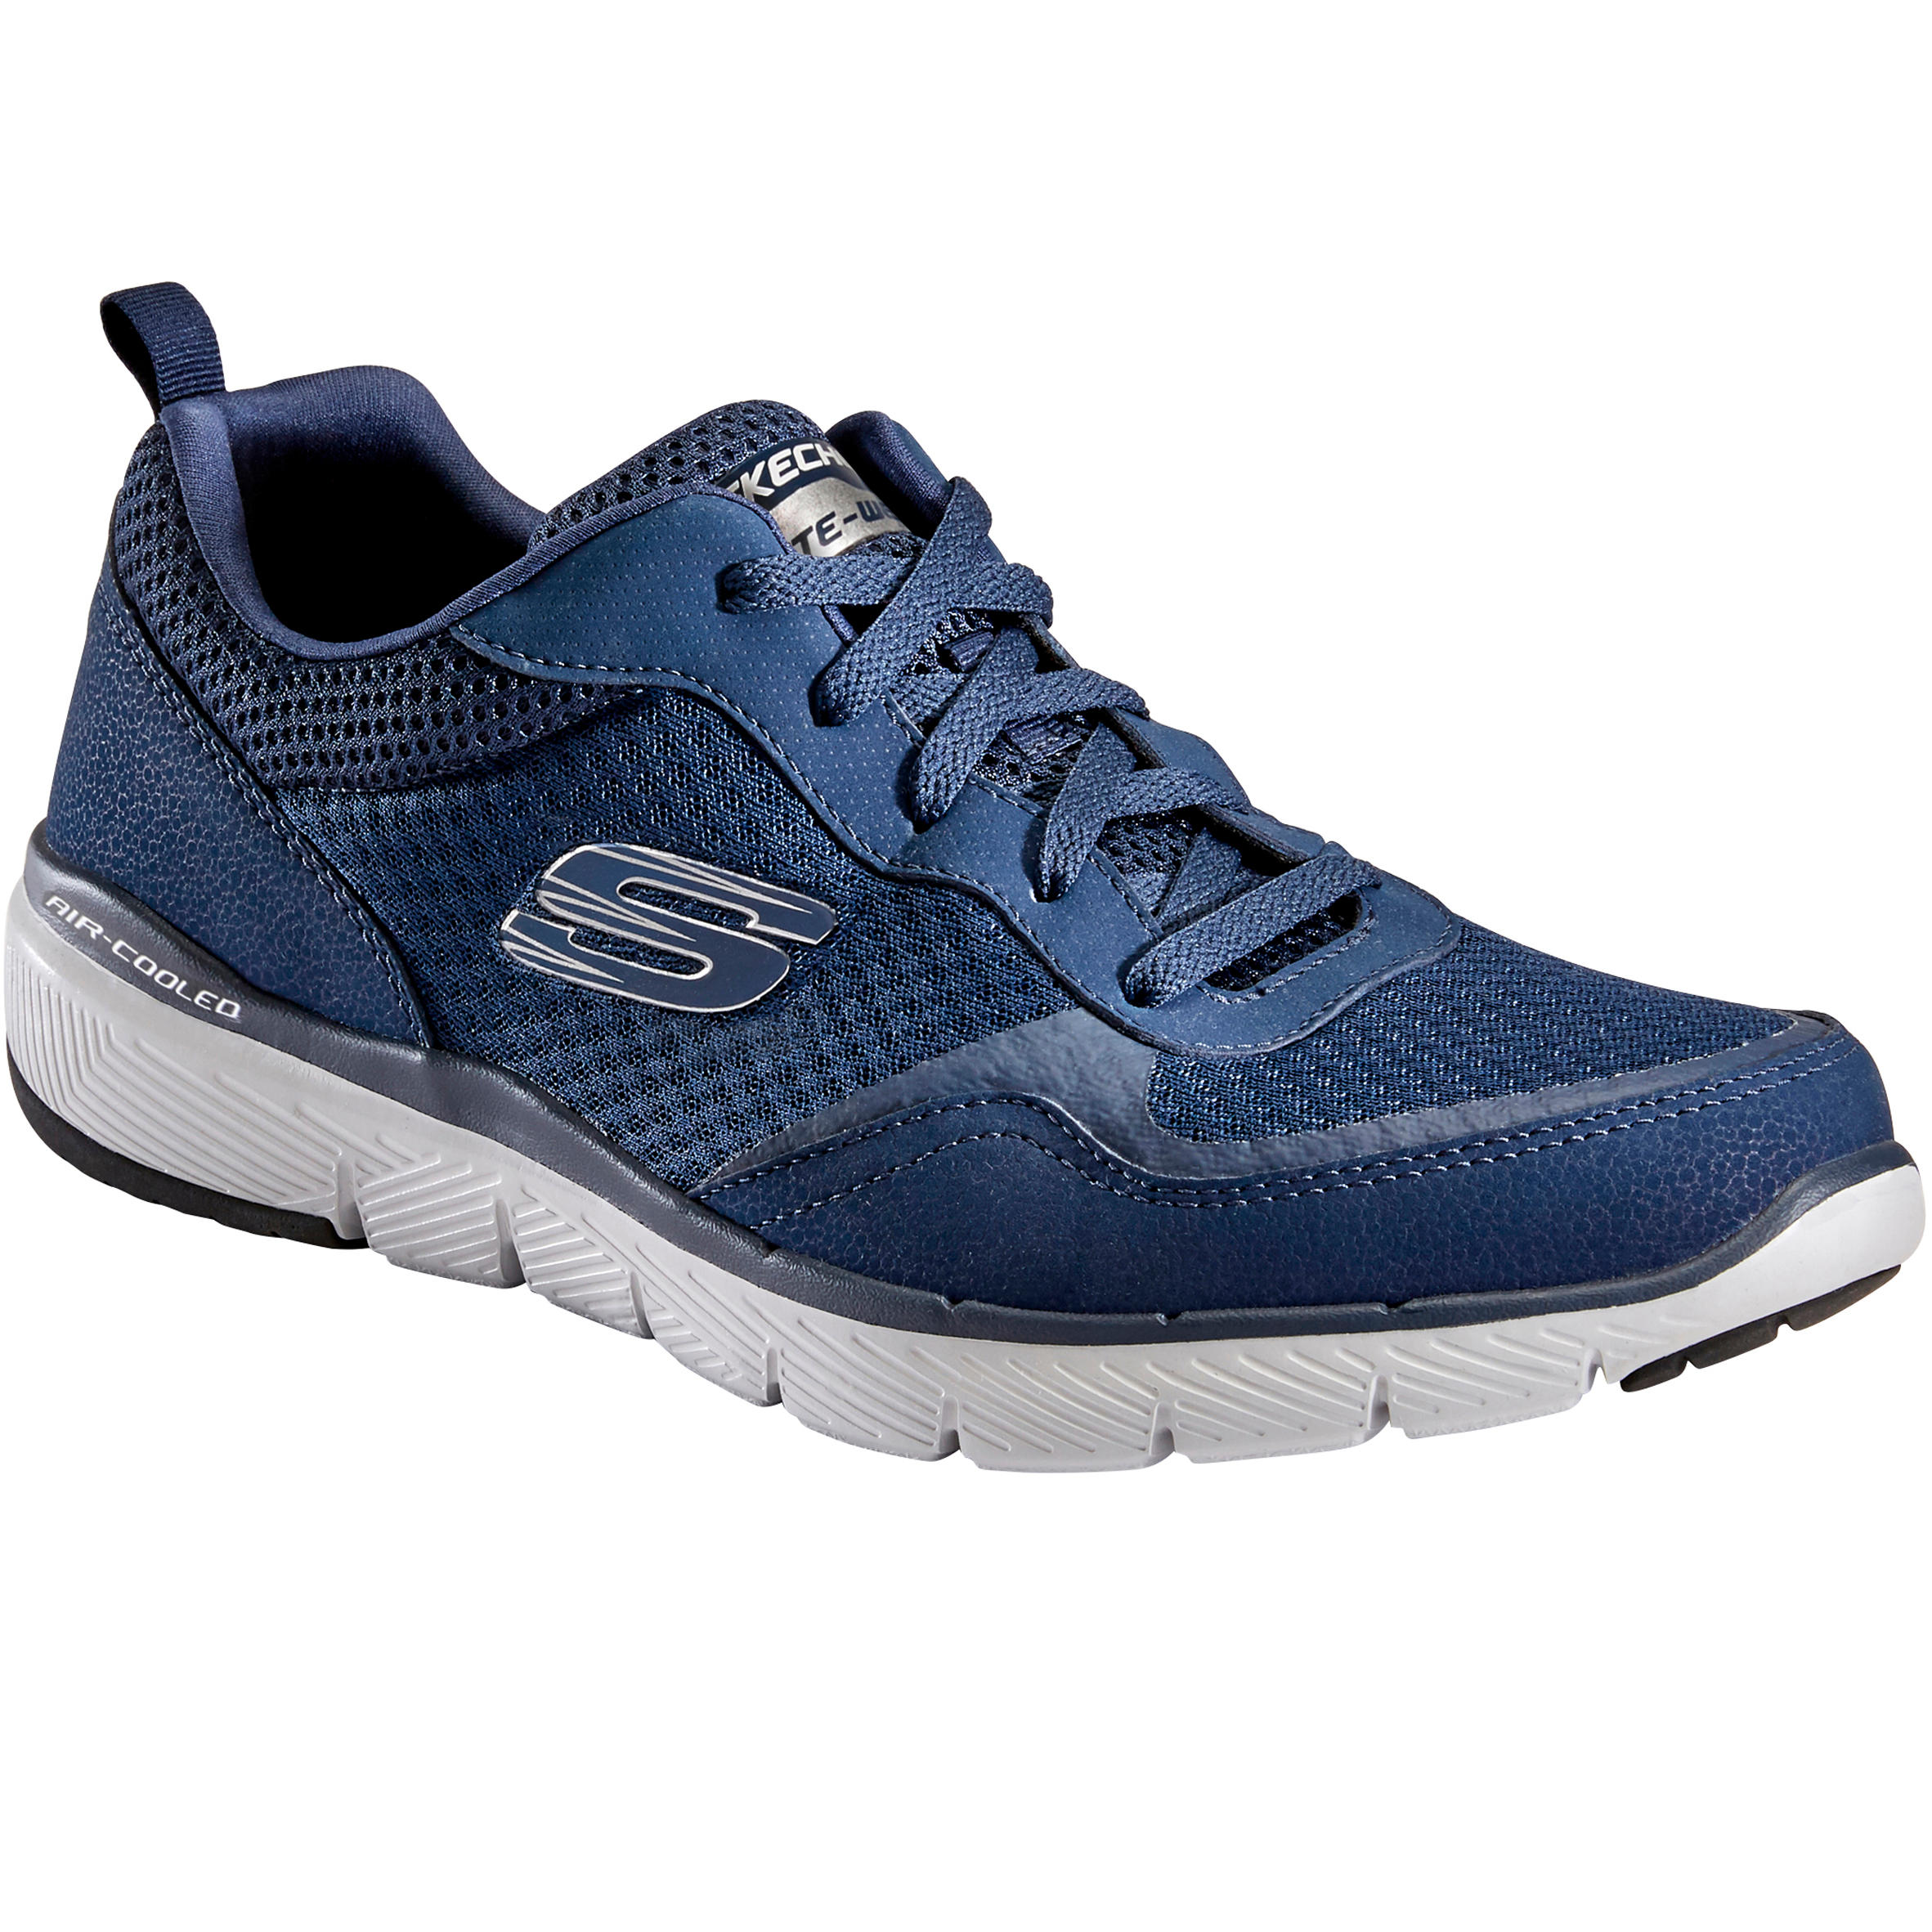 Skechers Flex Appeal Men's Fitness